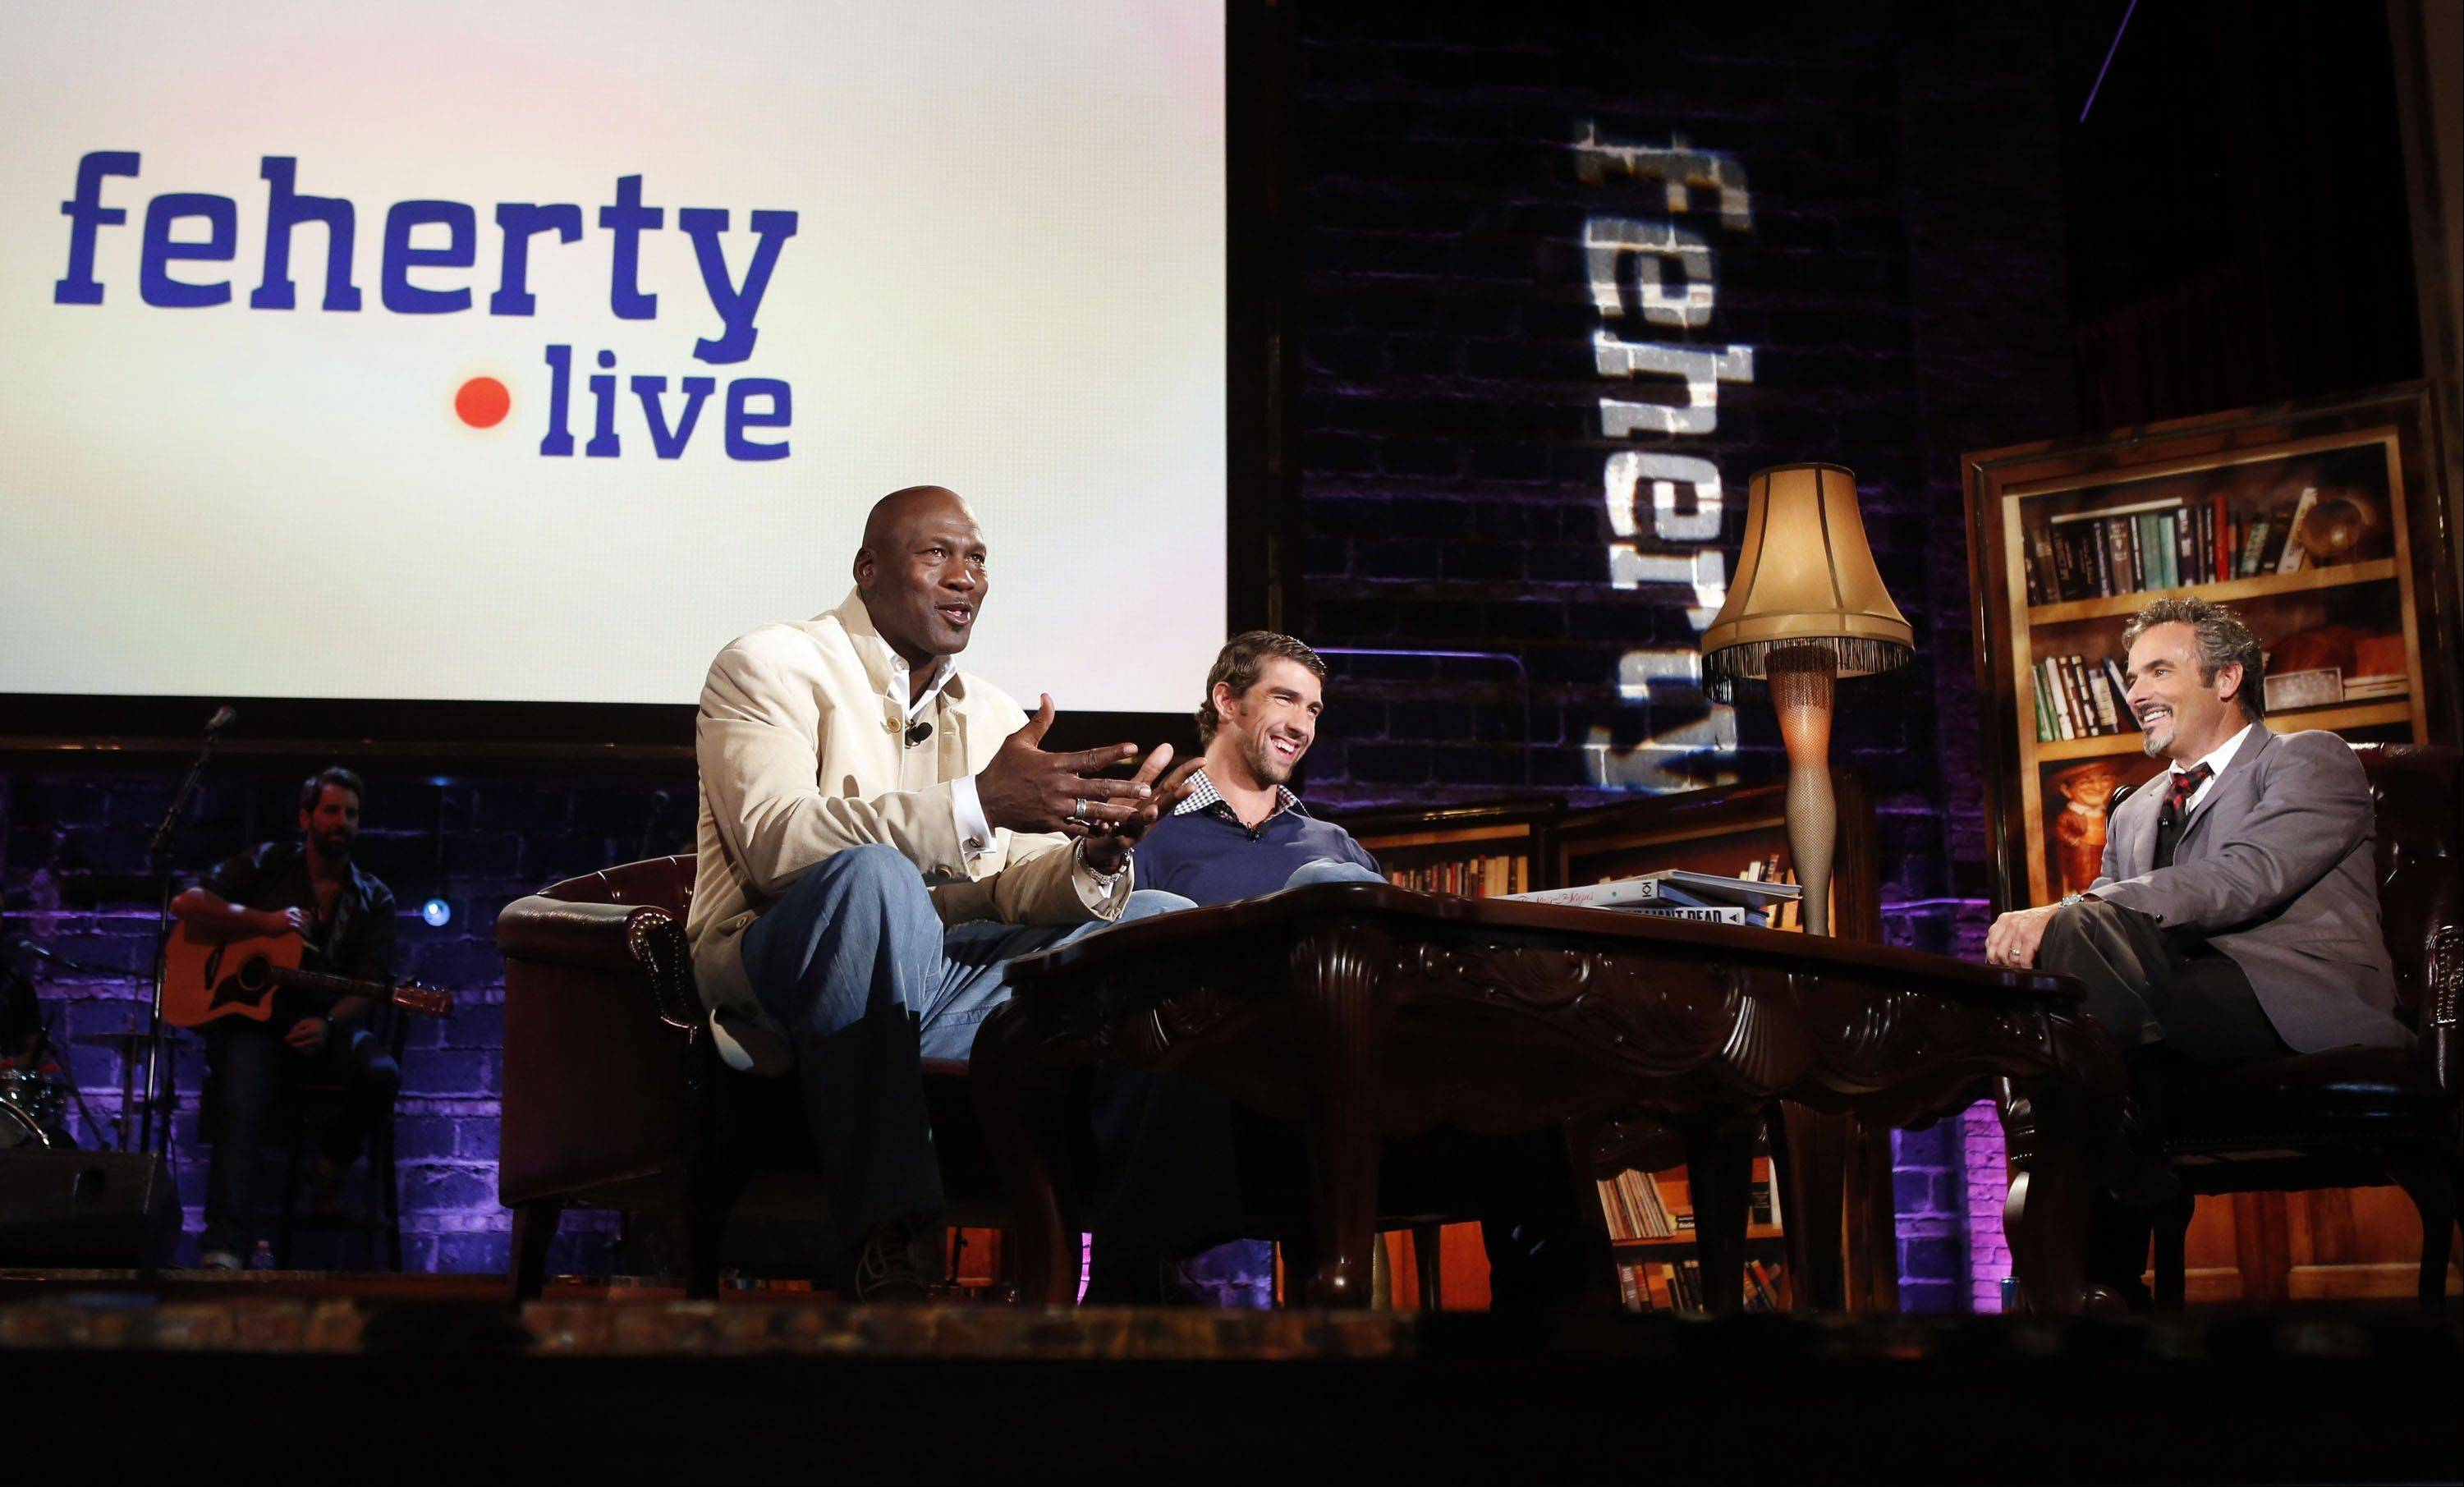 A walk on the wild side with 'Feherty Live'